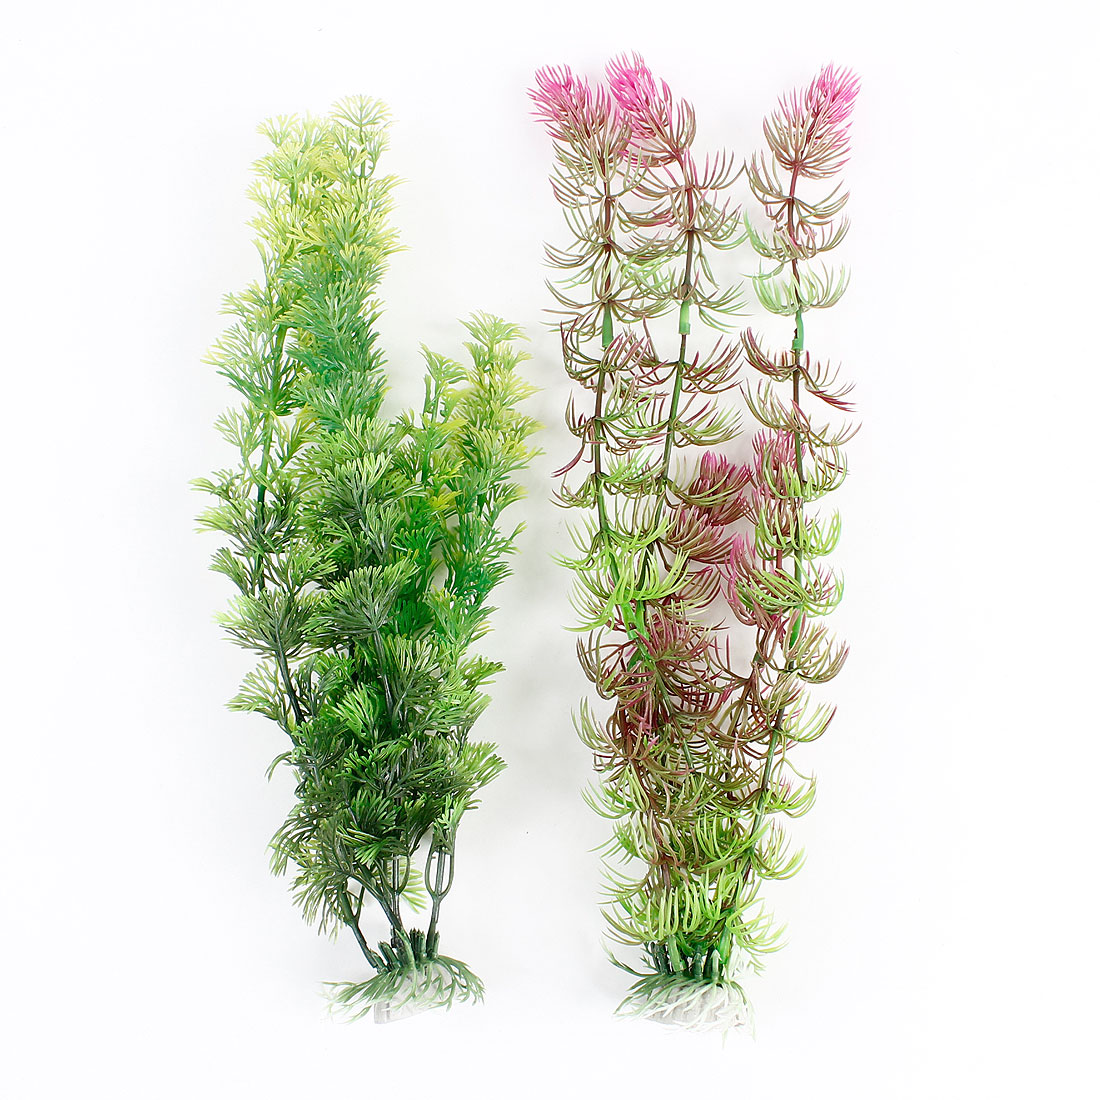 "2 Pcs Green Fuchsia Plastic Underwater Weeds Plant Ornament 15"" High for Fish Tank"